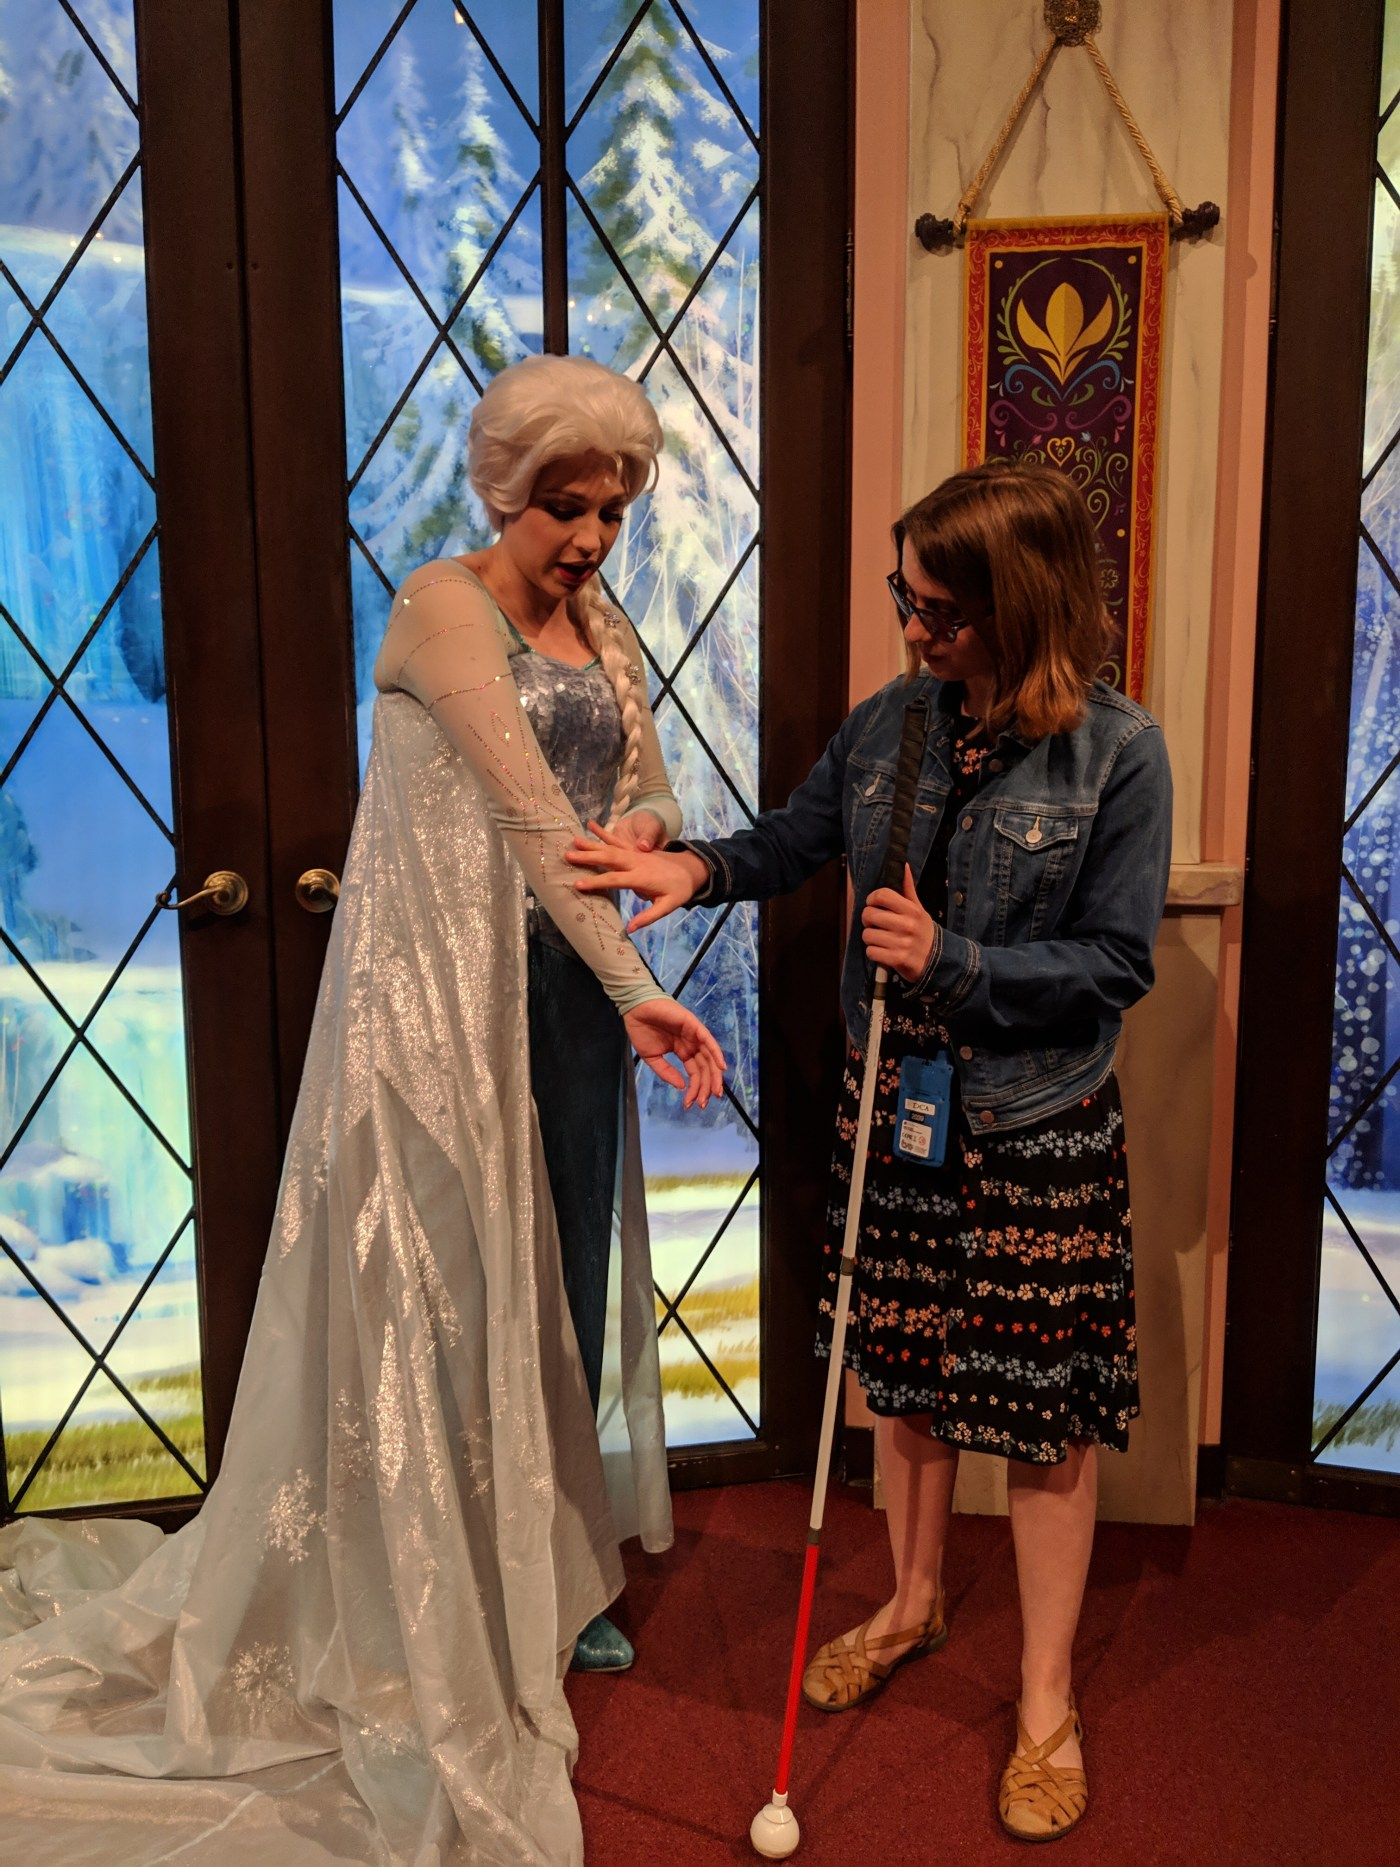 Veronica feeling the embroidery on princess Elsa's sleeve